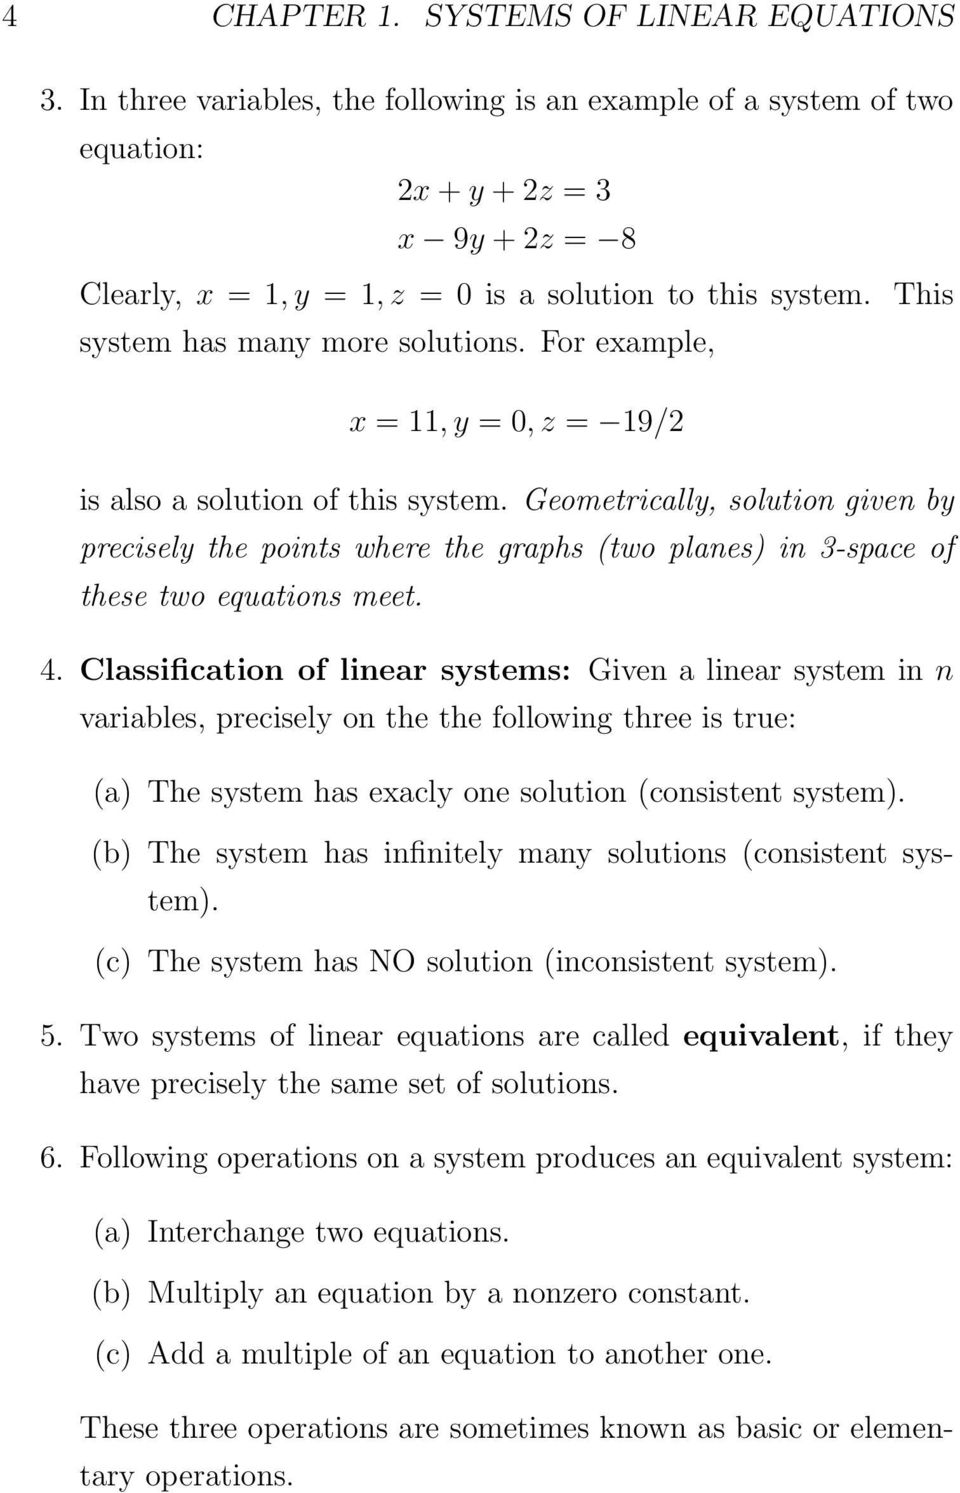 This system has many more solutions. For example, x = 11, y = 0, z = 19/2 is also a solution of this system.